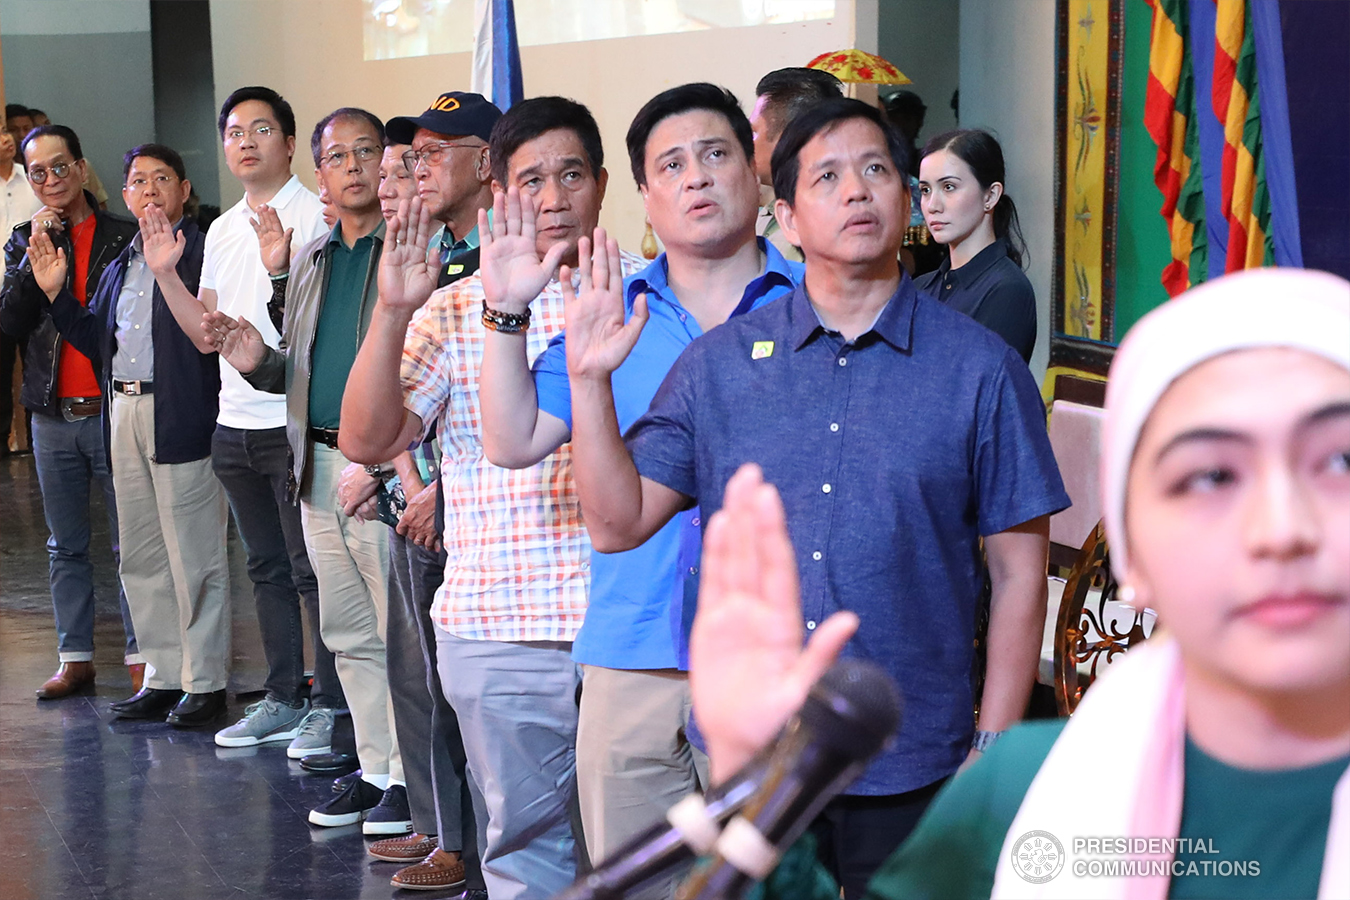 President Rodrigo Roa Duterte together with some members of his cabinet and Senator Juan Miguel Zubiri recite the pledge of support during the Peace Assembly for the Ratification of Republic Act No. 11054 or the Bangsamoro Organic Law (BOL), held at the Shariff Kabunsuan Cultural Complex in Cotabato City on January 18, 2019. SIMEON CELI JR./PRESIDENTIAL PHOTO